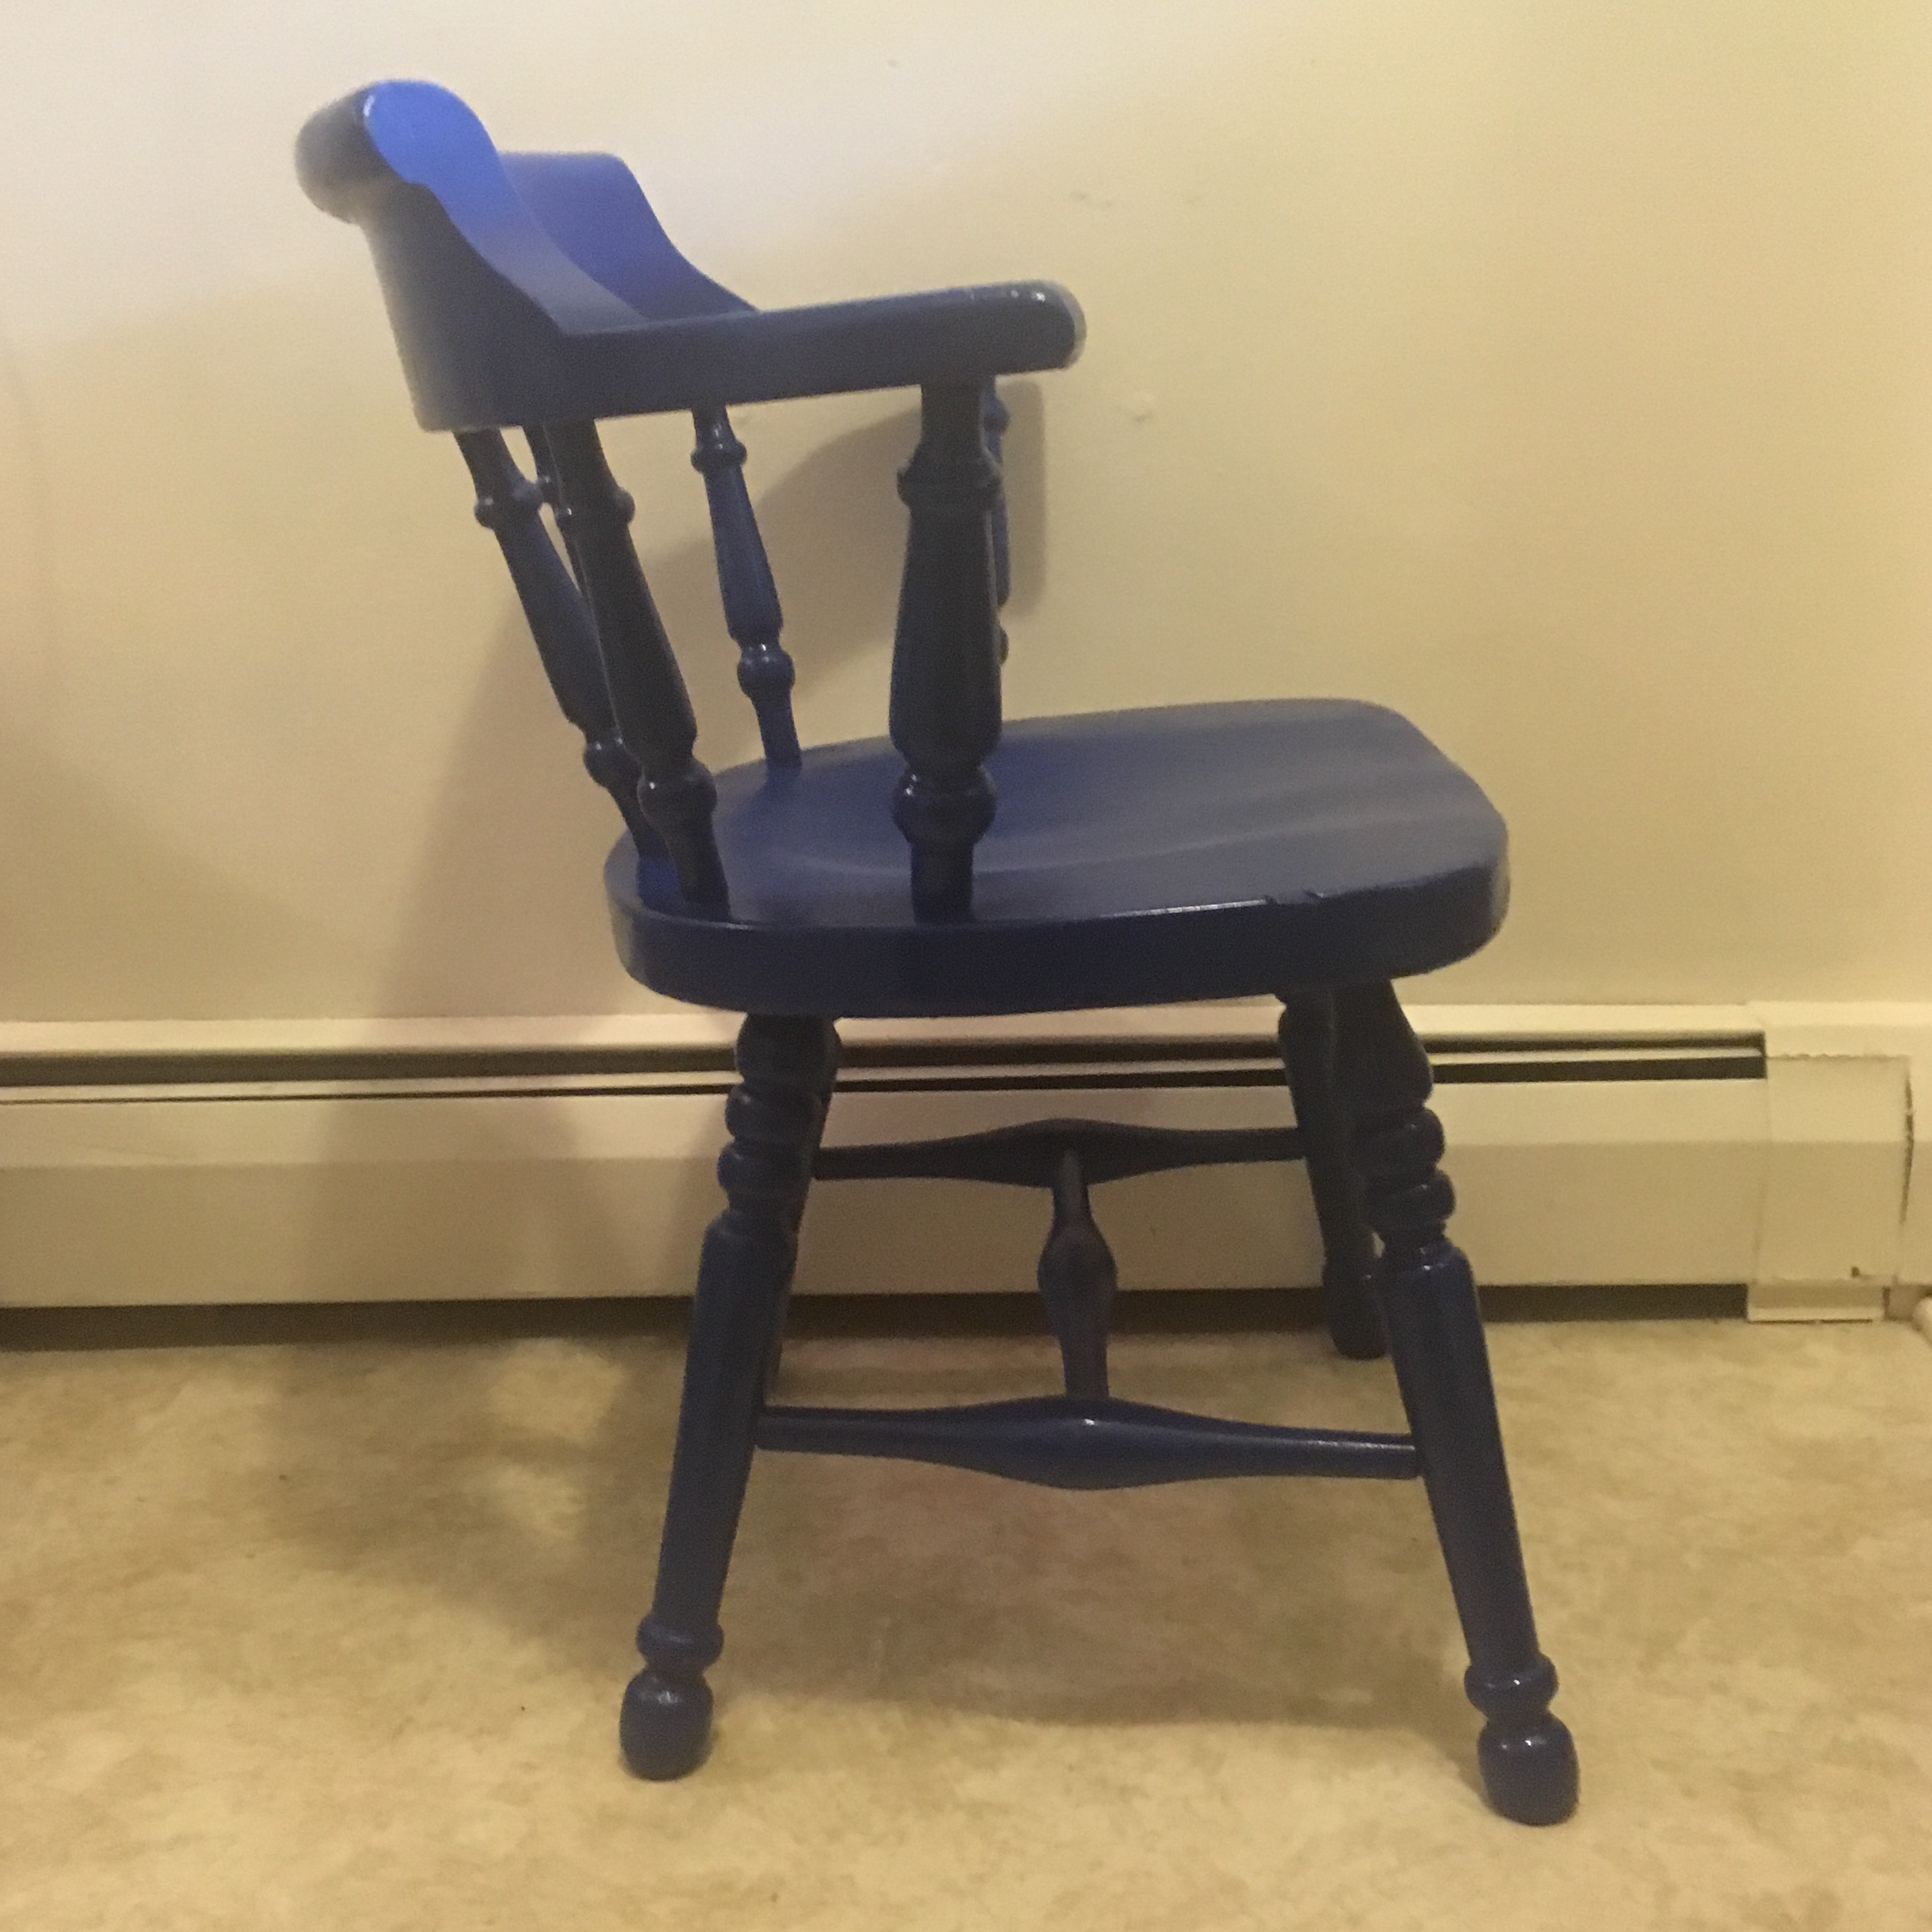 Vintage Lacquer Blue Wooden Captainu0027s Chair For Sale. This Is A Vintage,  Substantial, Well Made Example Of The Ever Popular